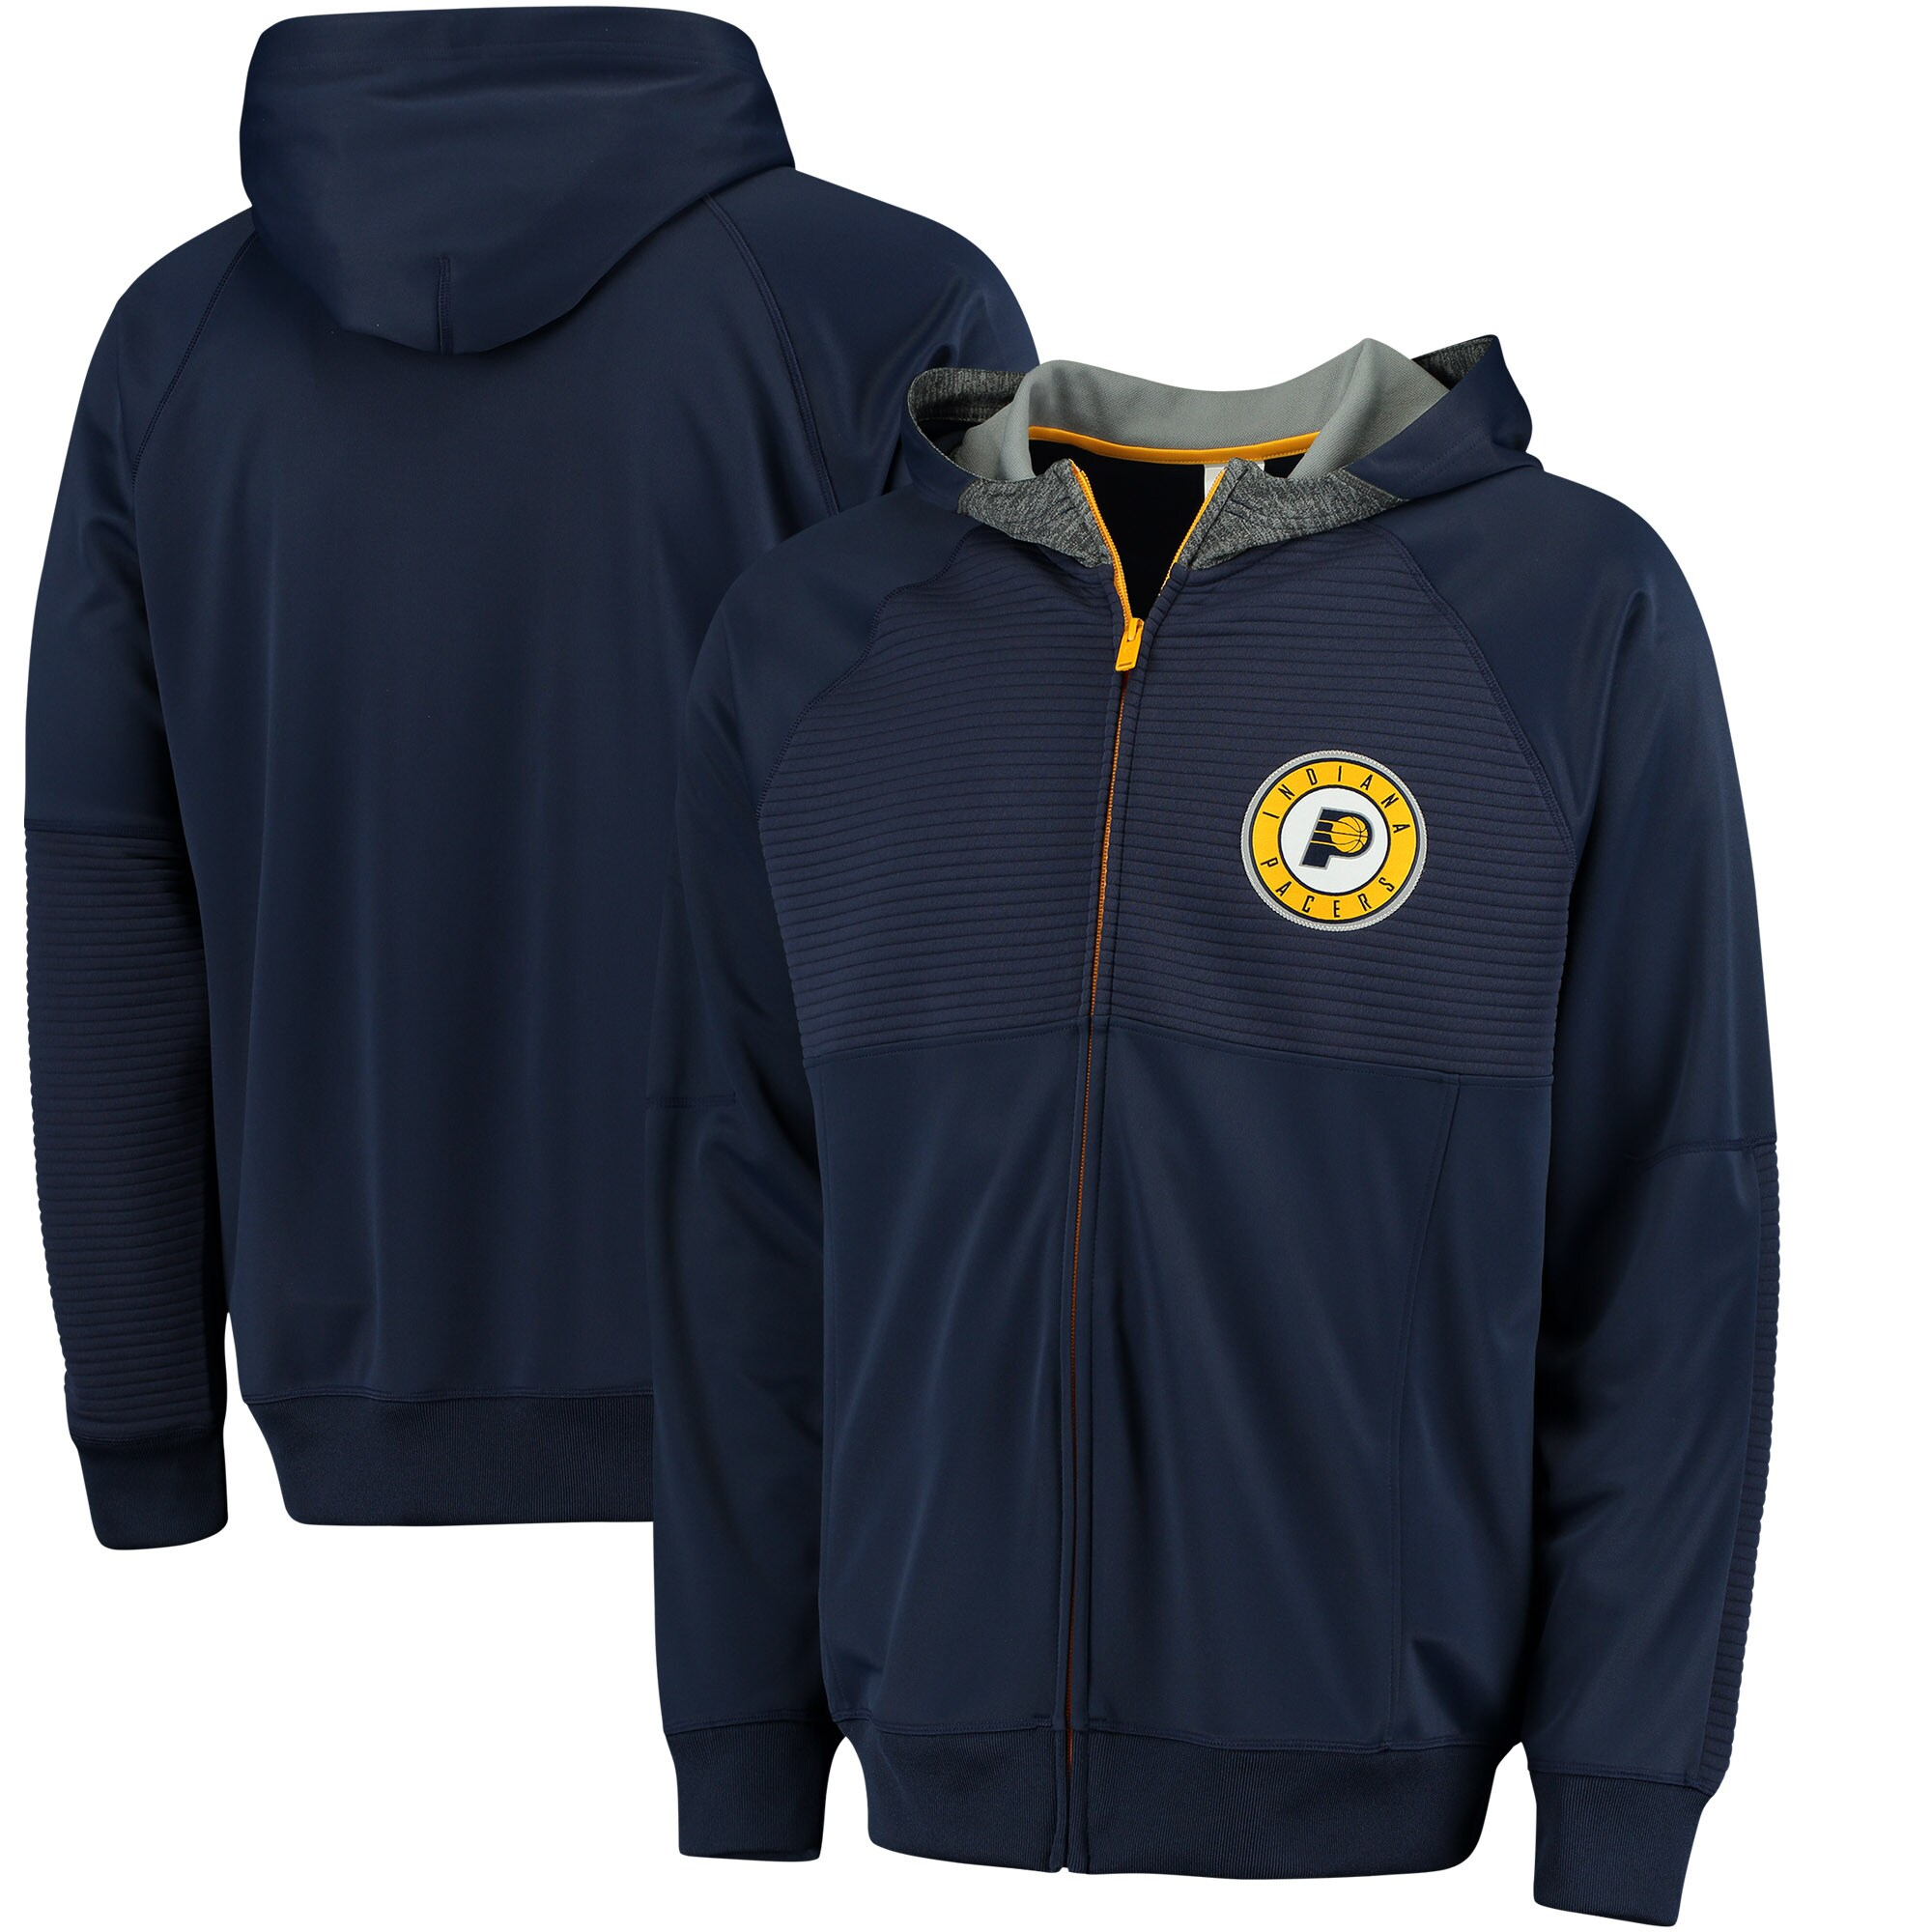 Indiana Pacers adidas 2016 Pre-Game Full-Zip Hooded Jacket - Navy